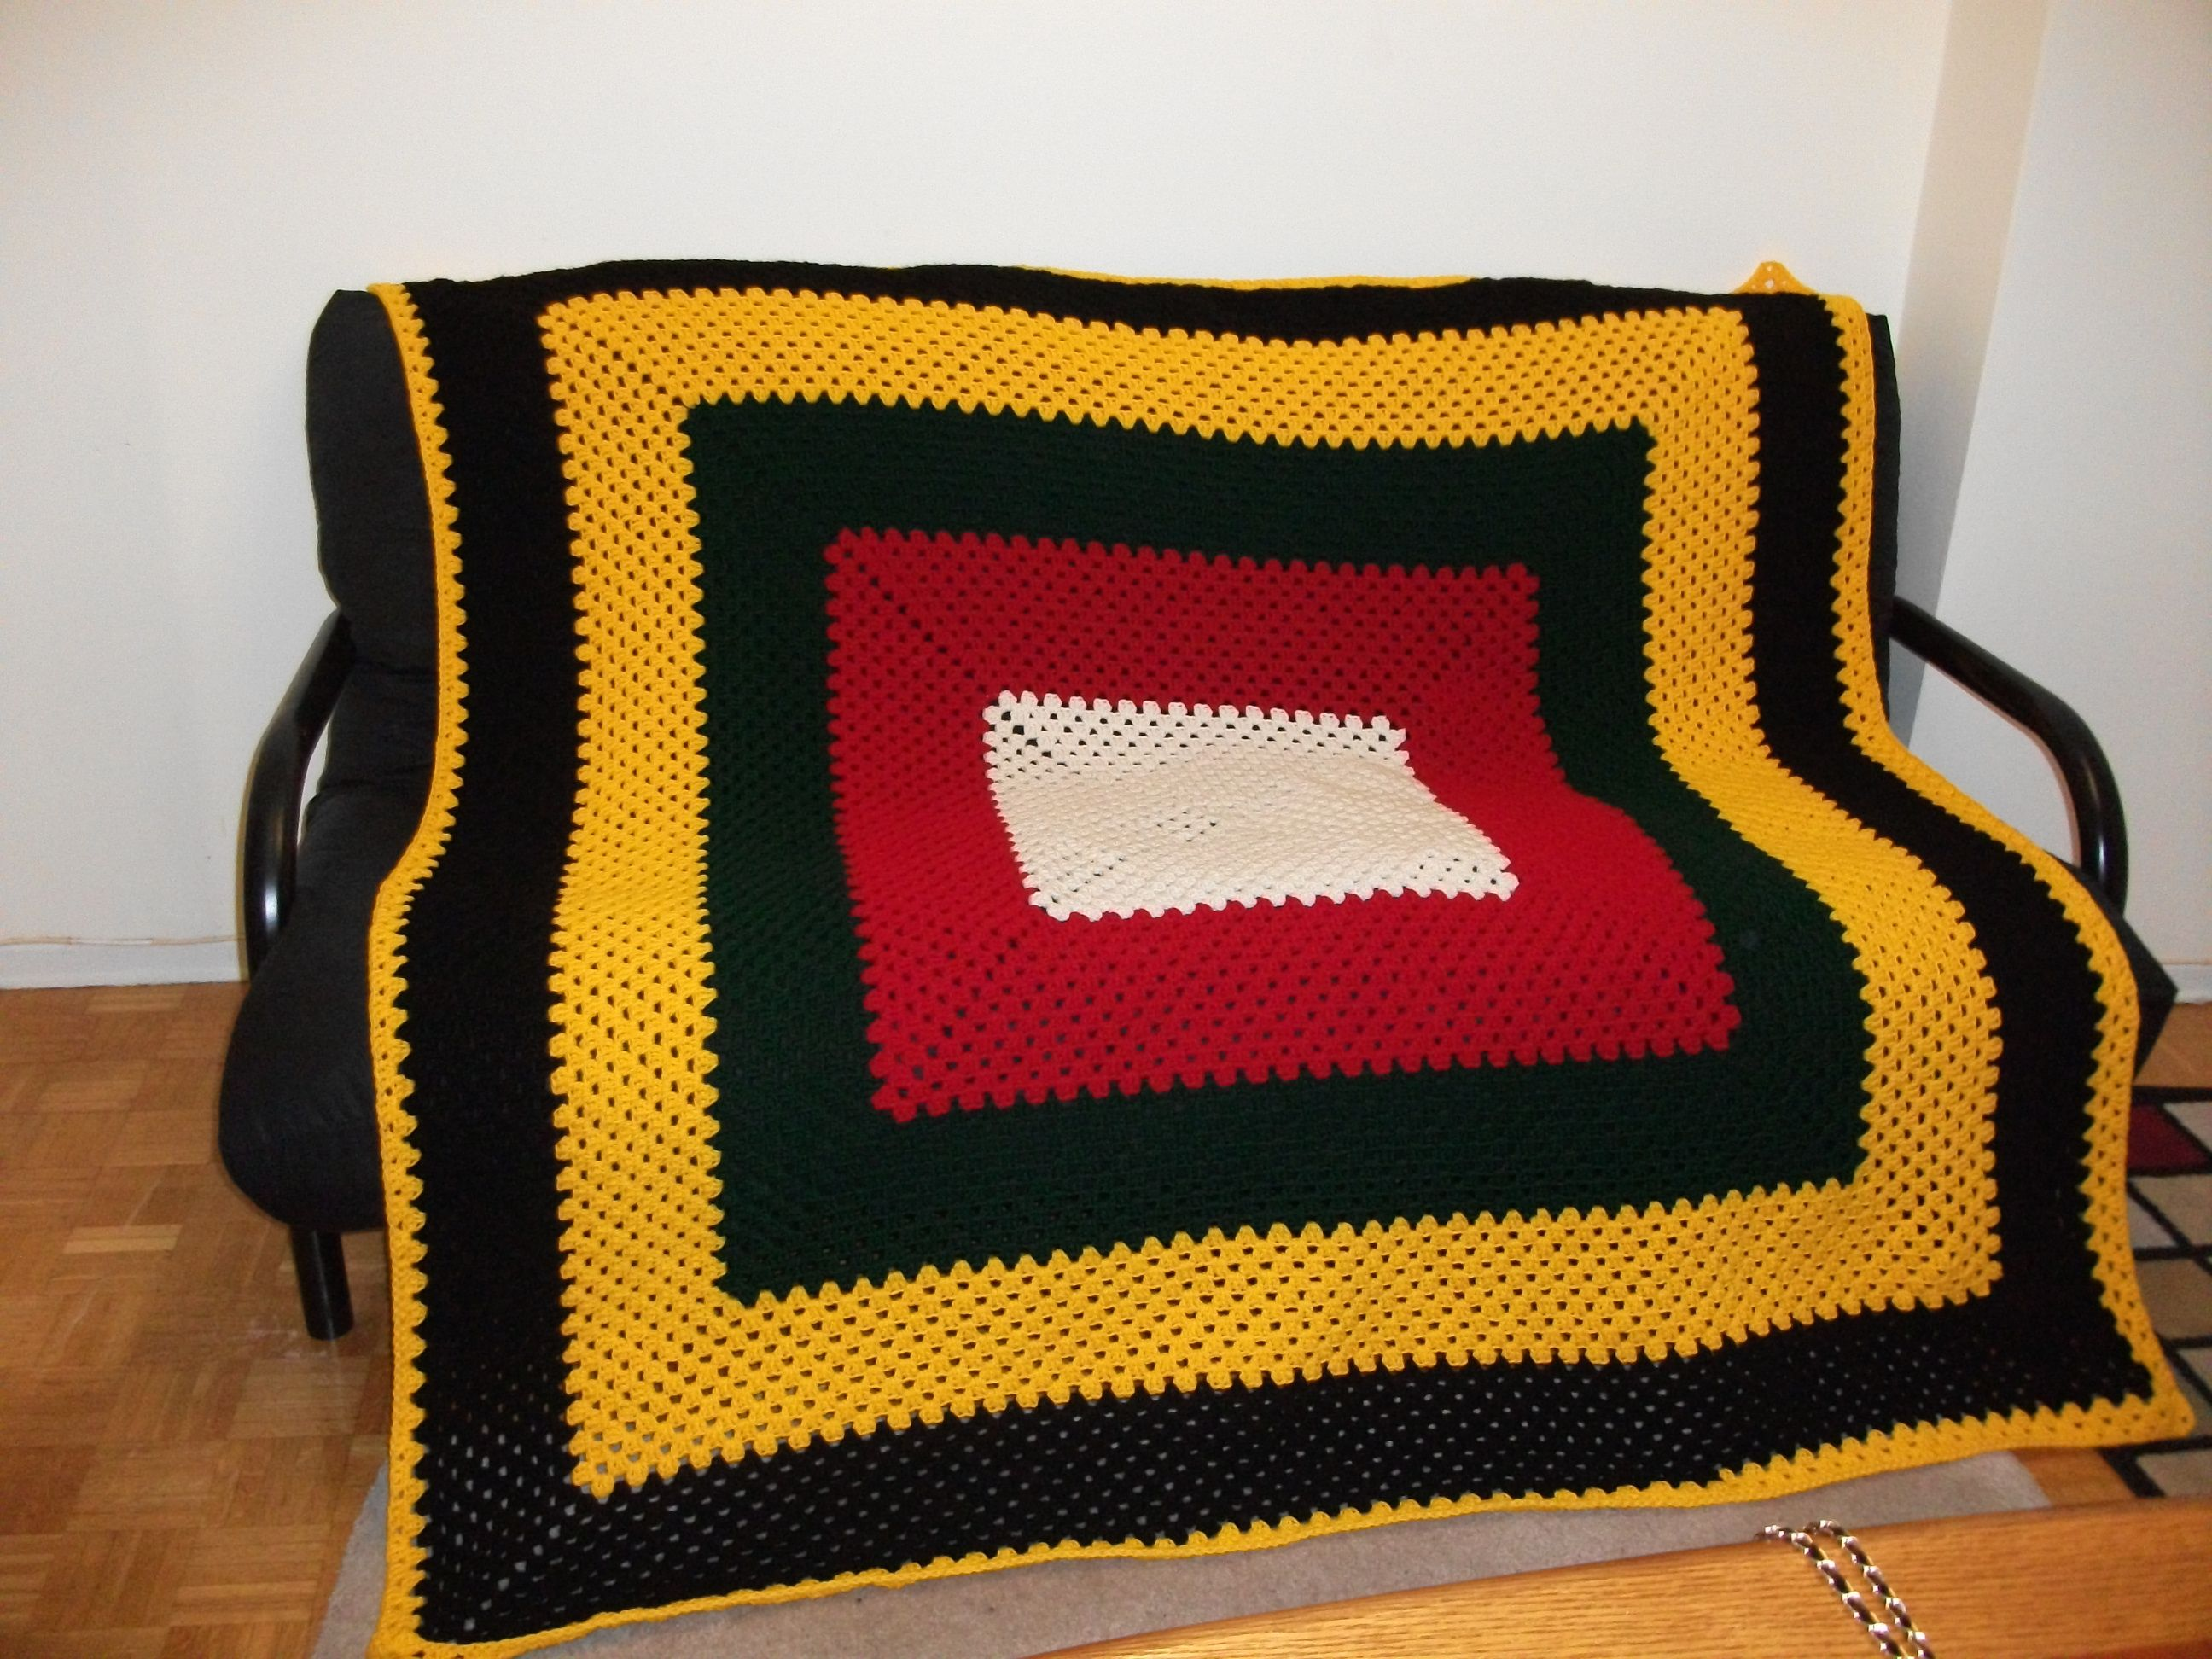 This is a blanket I made for a friend's birthday, he wanted it in colors of red, green yellow, black and off-white.